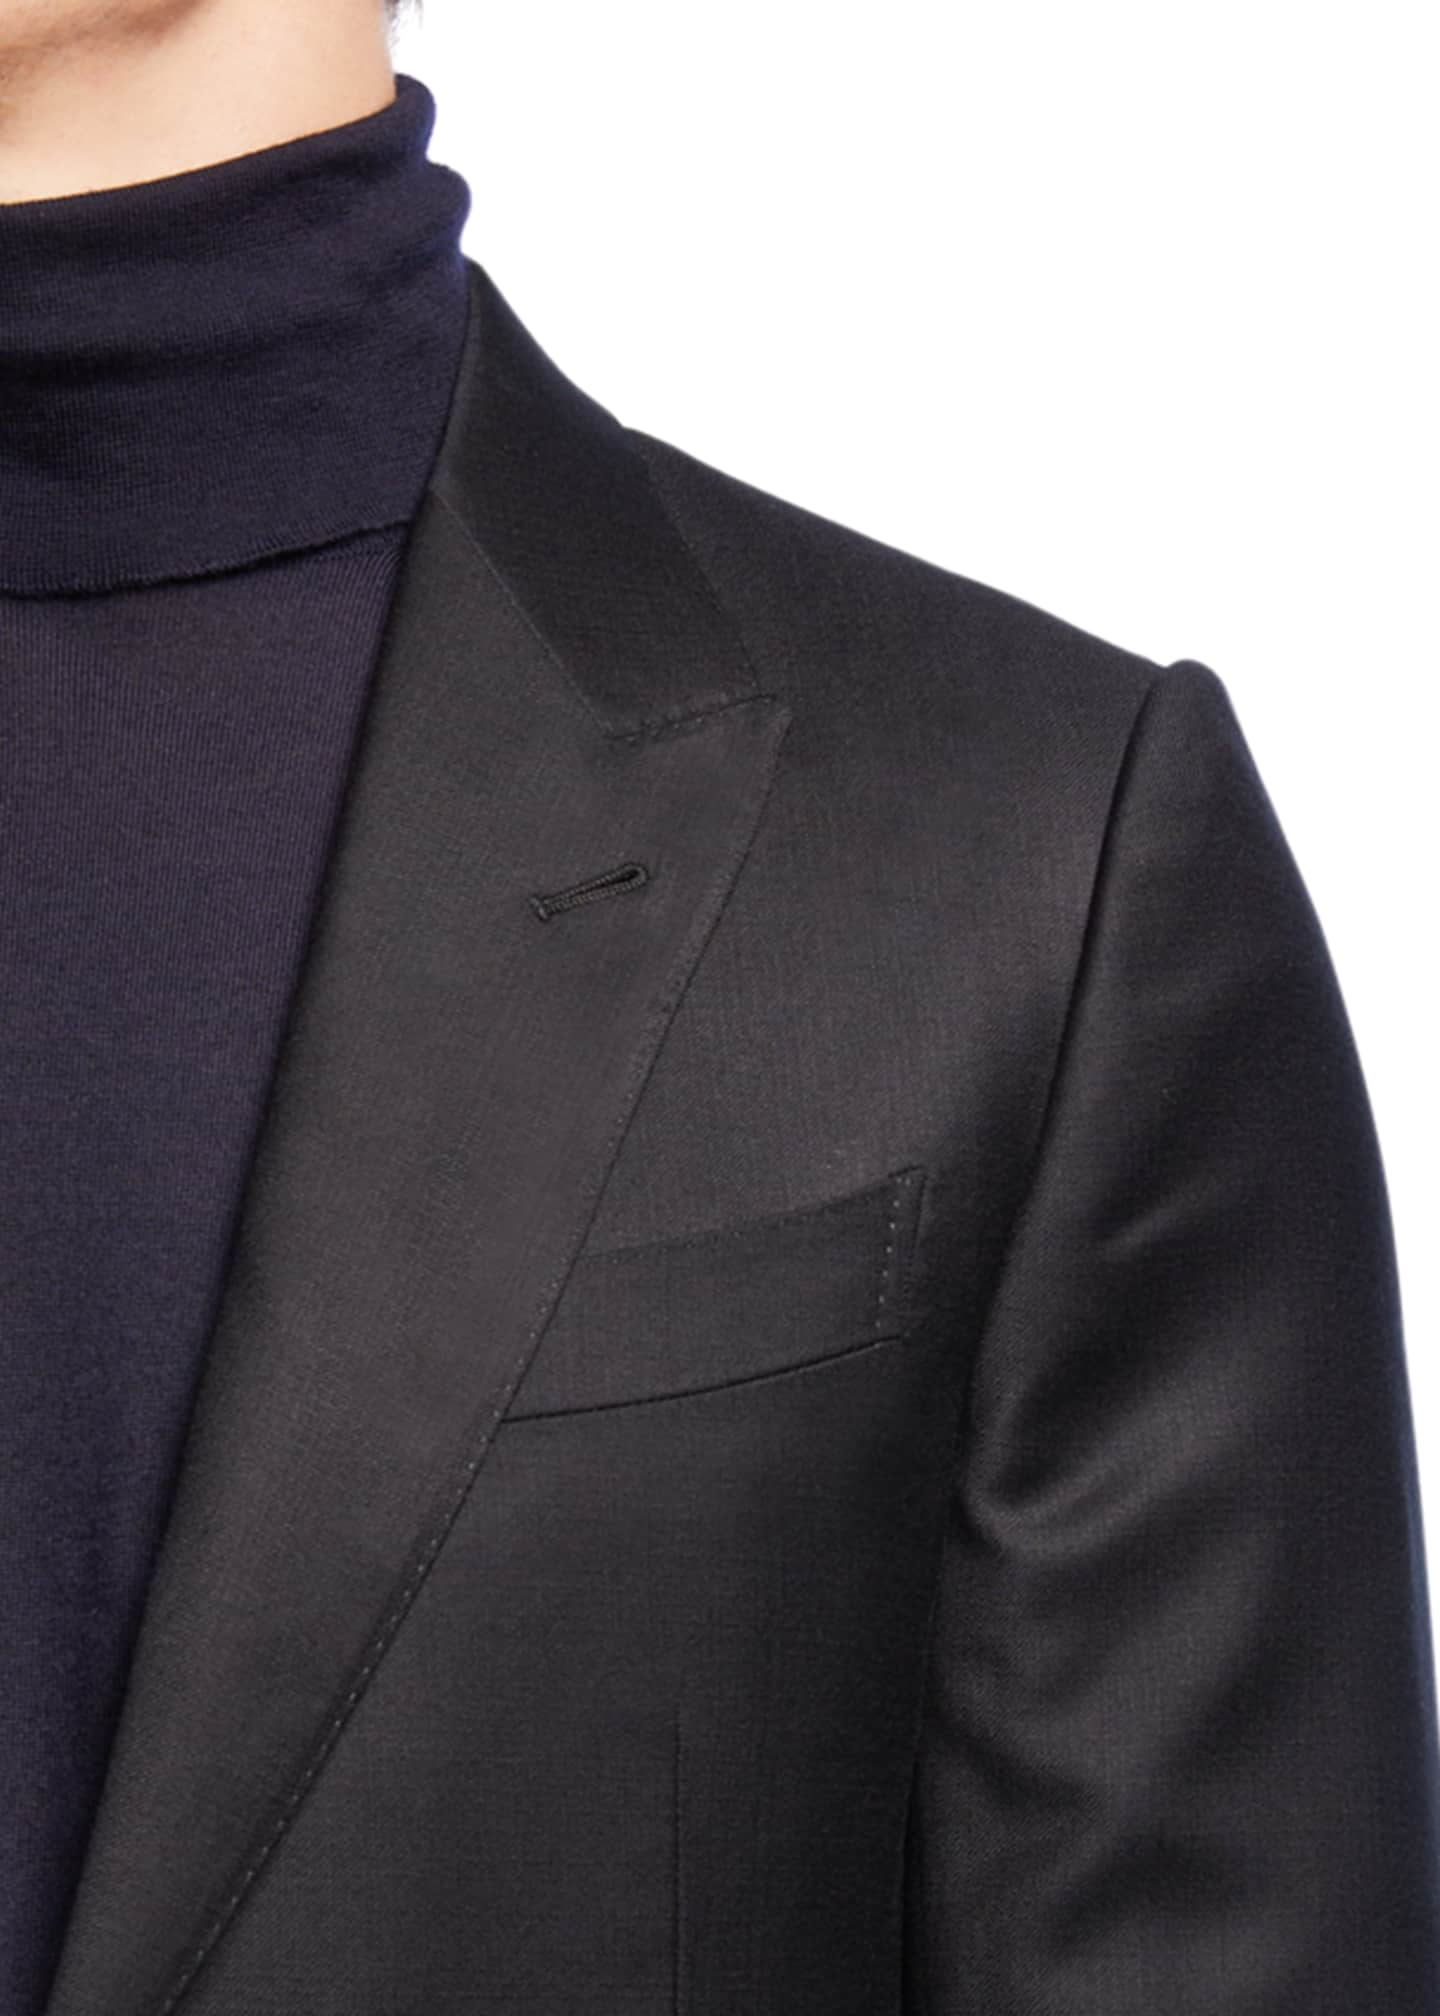 Image 4 of 4: Men's Textured Two-Piece Trim-Fit Wool Silk